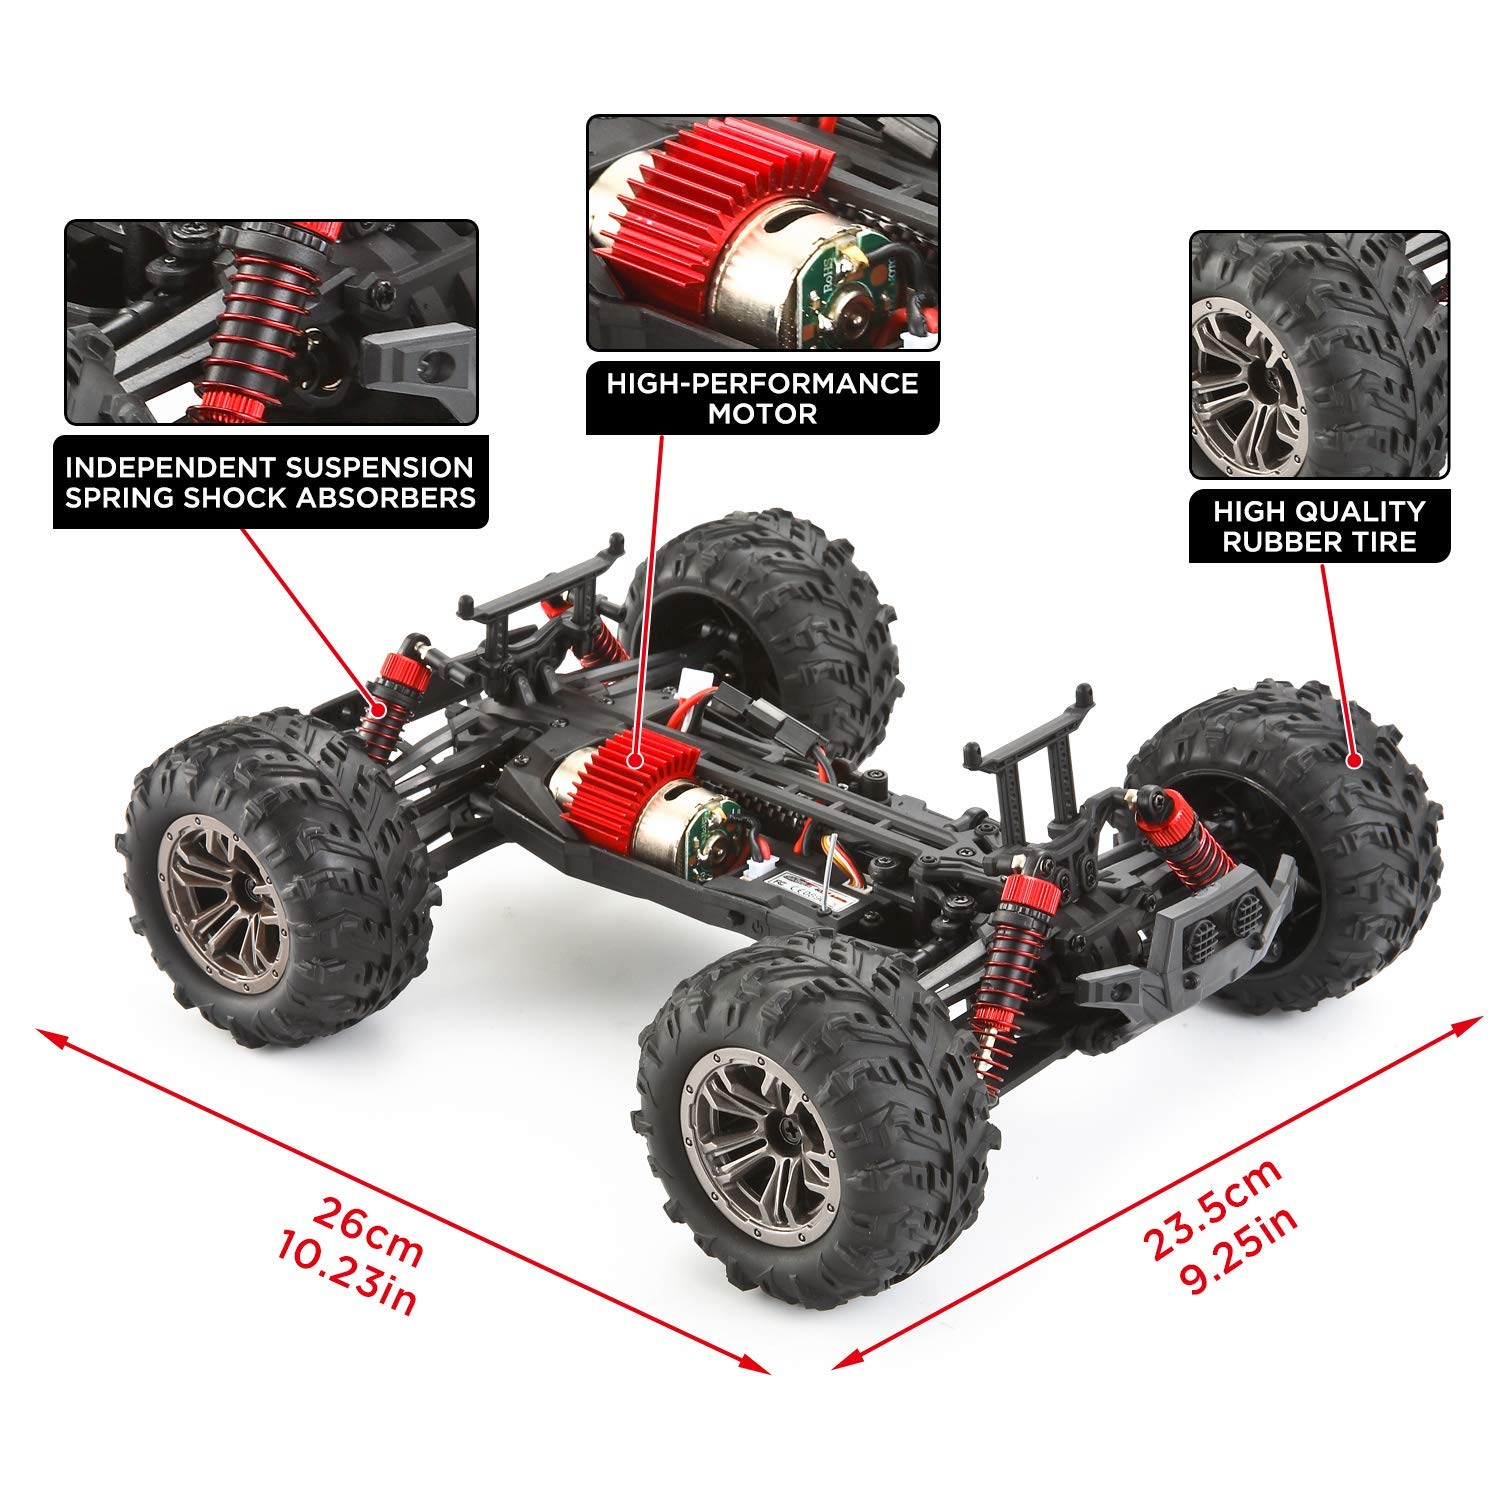 VATOS Remote Control Car High Speed Off-Road Vehicle 1:16 Scale 36km/h 4WD 2.4GHz Electric Racing Car RC Buggy Vehicle Truck Buggy Crawler Toy Car for Adults and Kids by VATOS (Image #7)